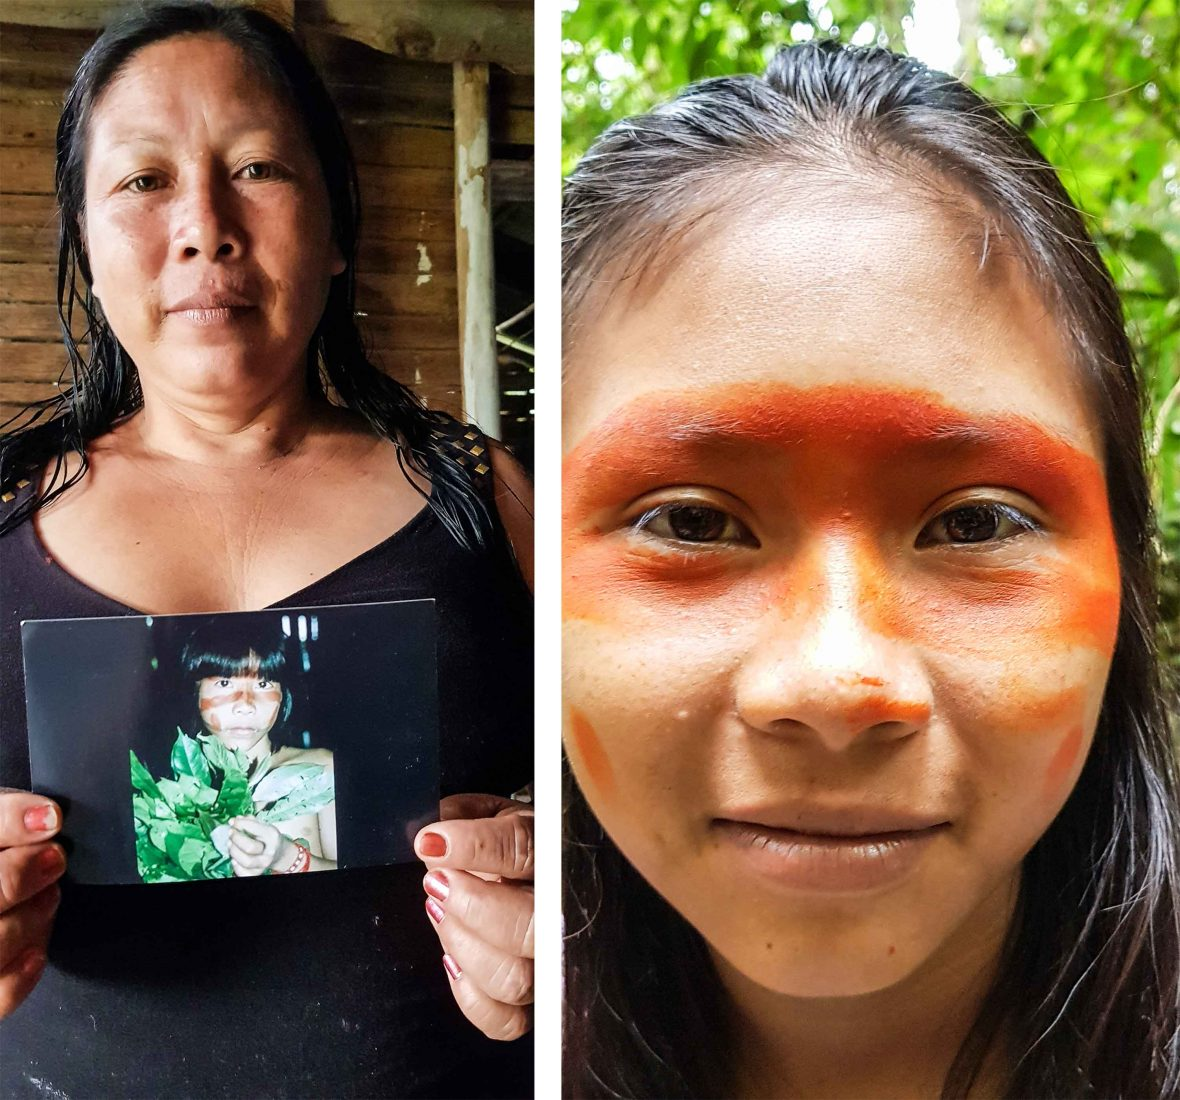 Lucy and her child. Lucy herself was only a child herself 25 years ago when Benedict stayed with their family in the Peruvian Amazon.